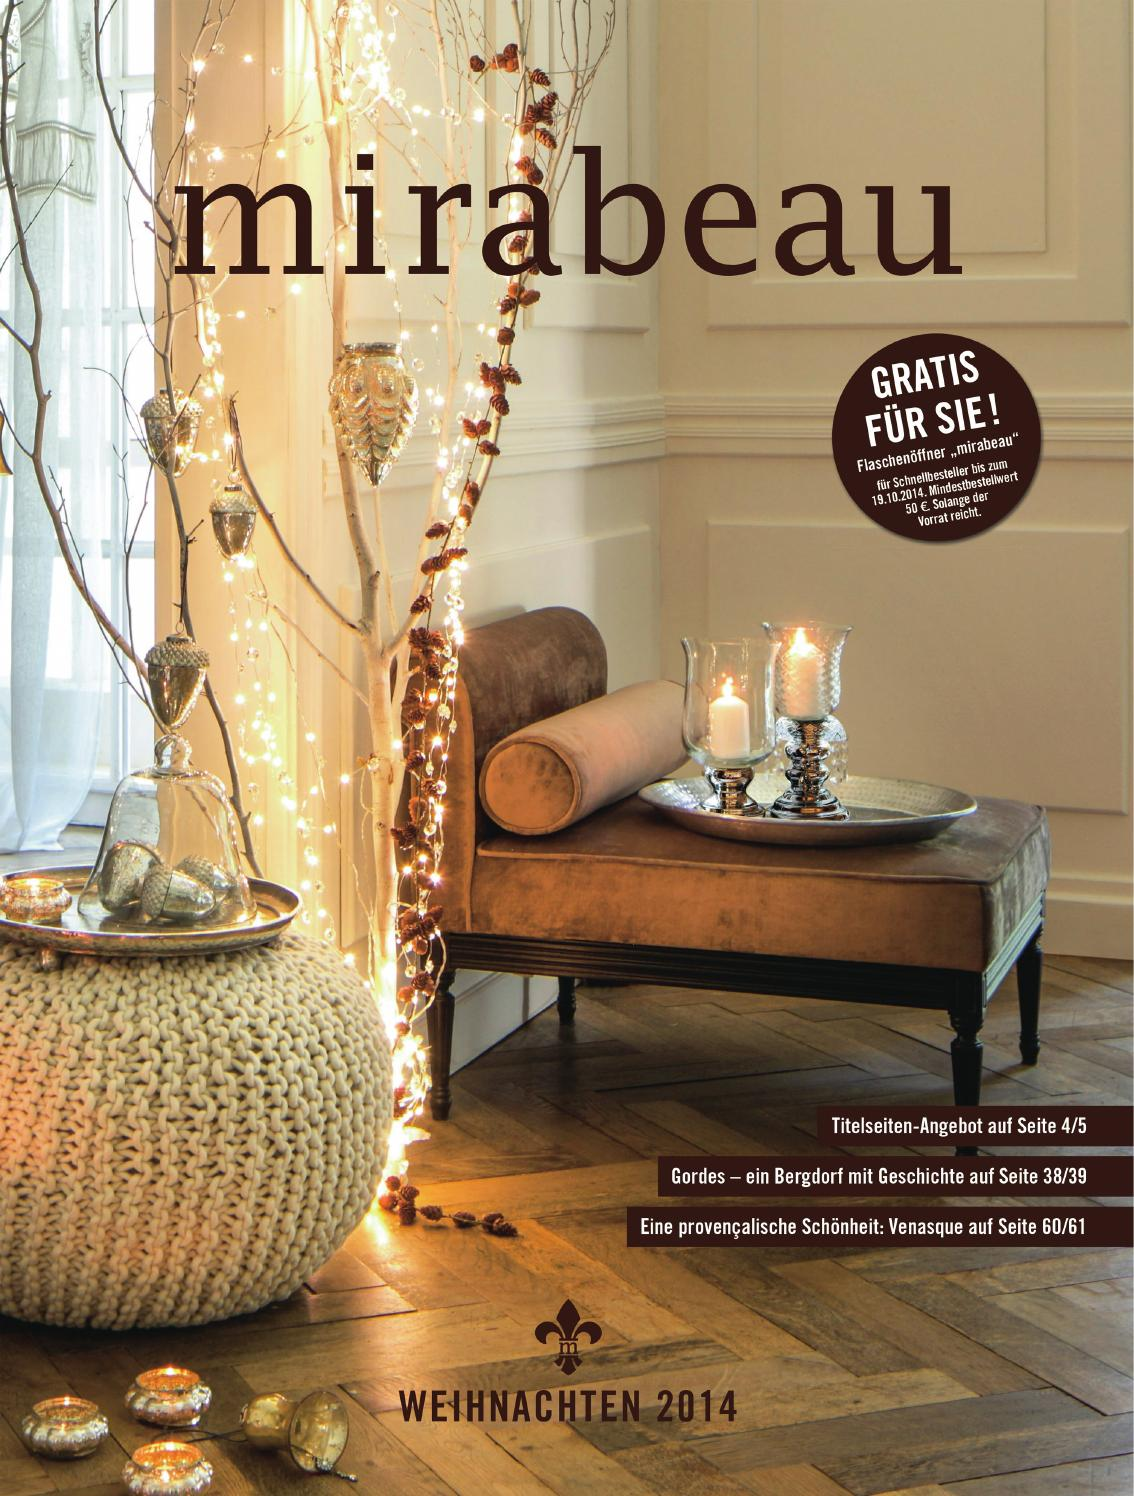 Каталог Mirabeau осень зима 2014 2015 By Prestige Issuu